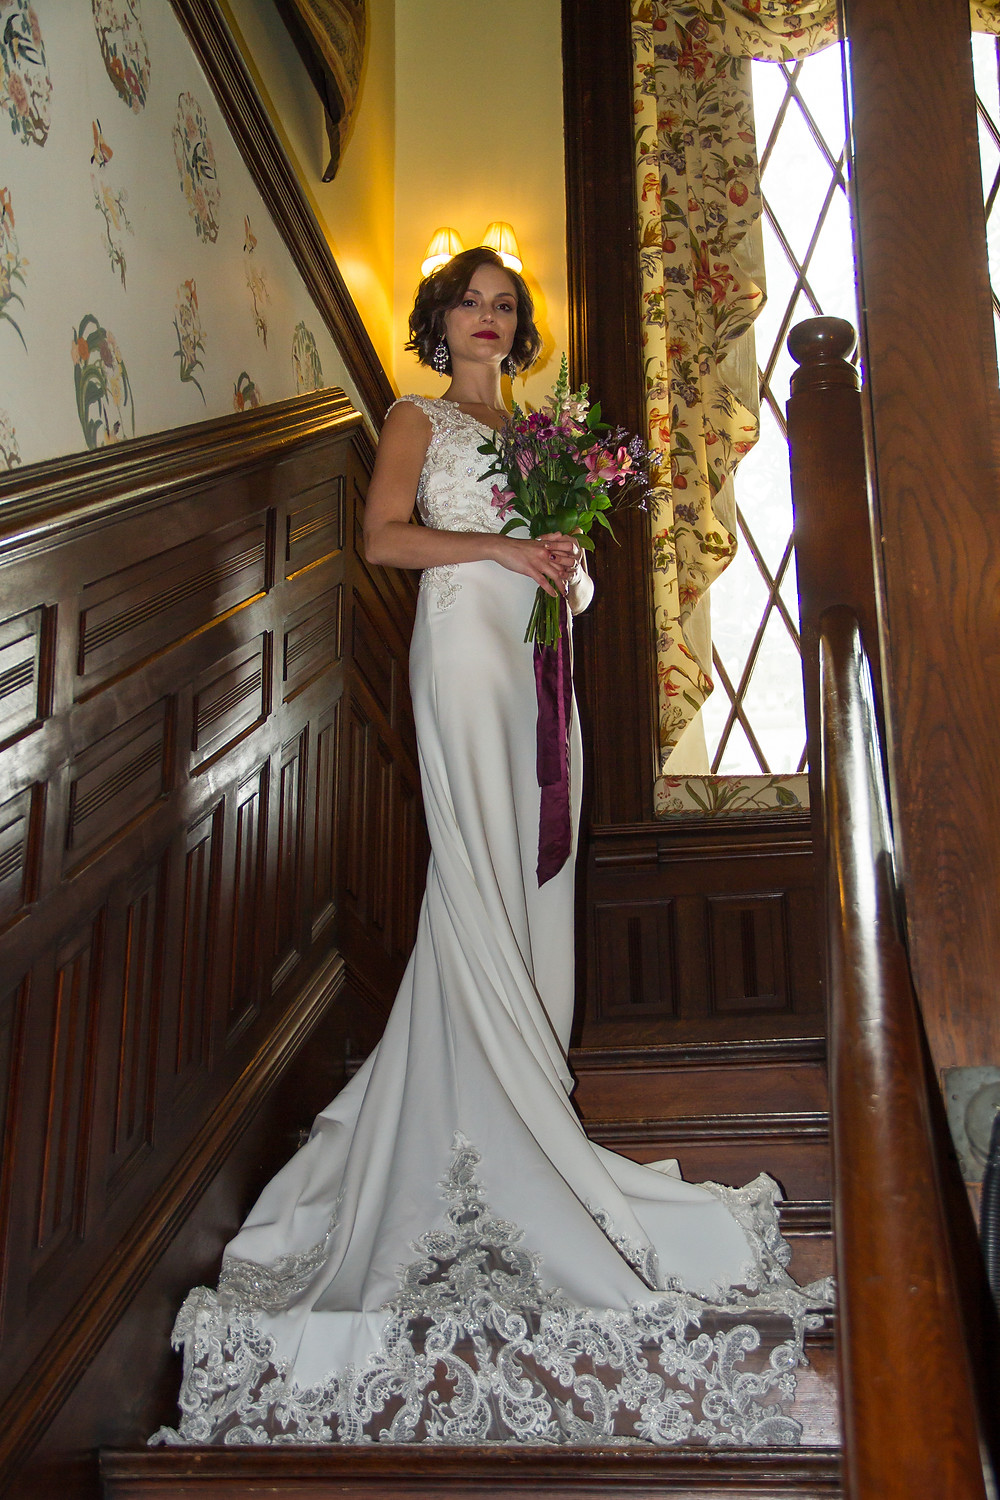 Photo by Luke Usry. Staircase of Burke Mansion.